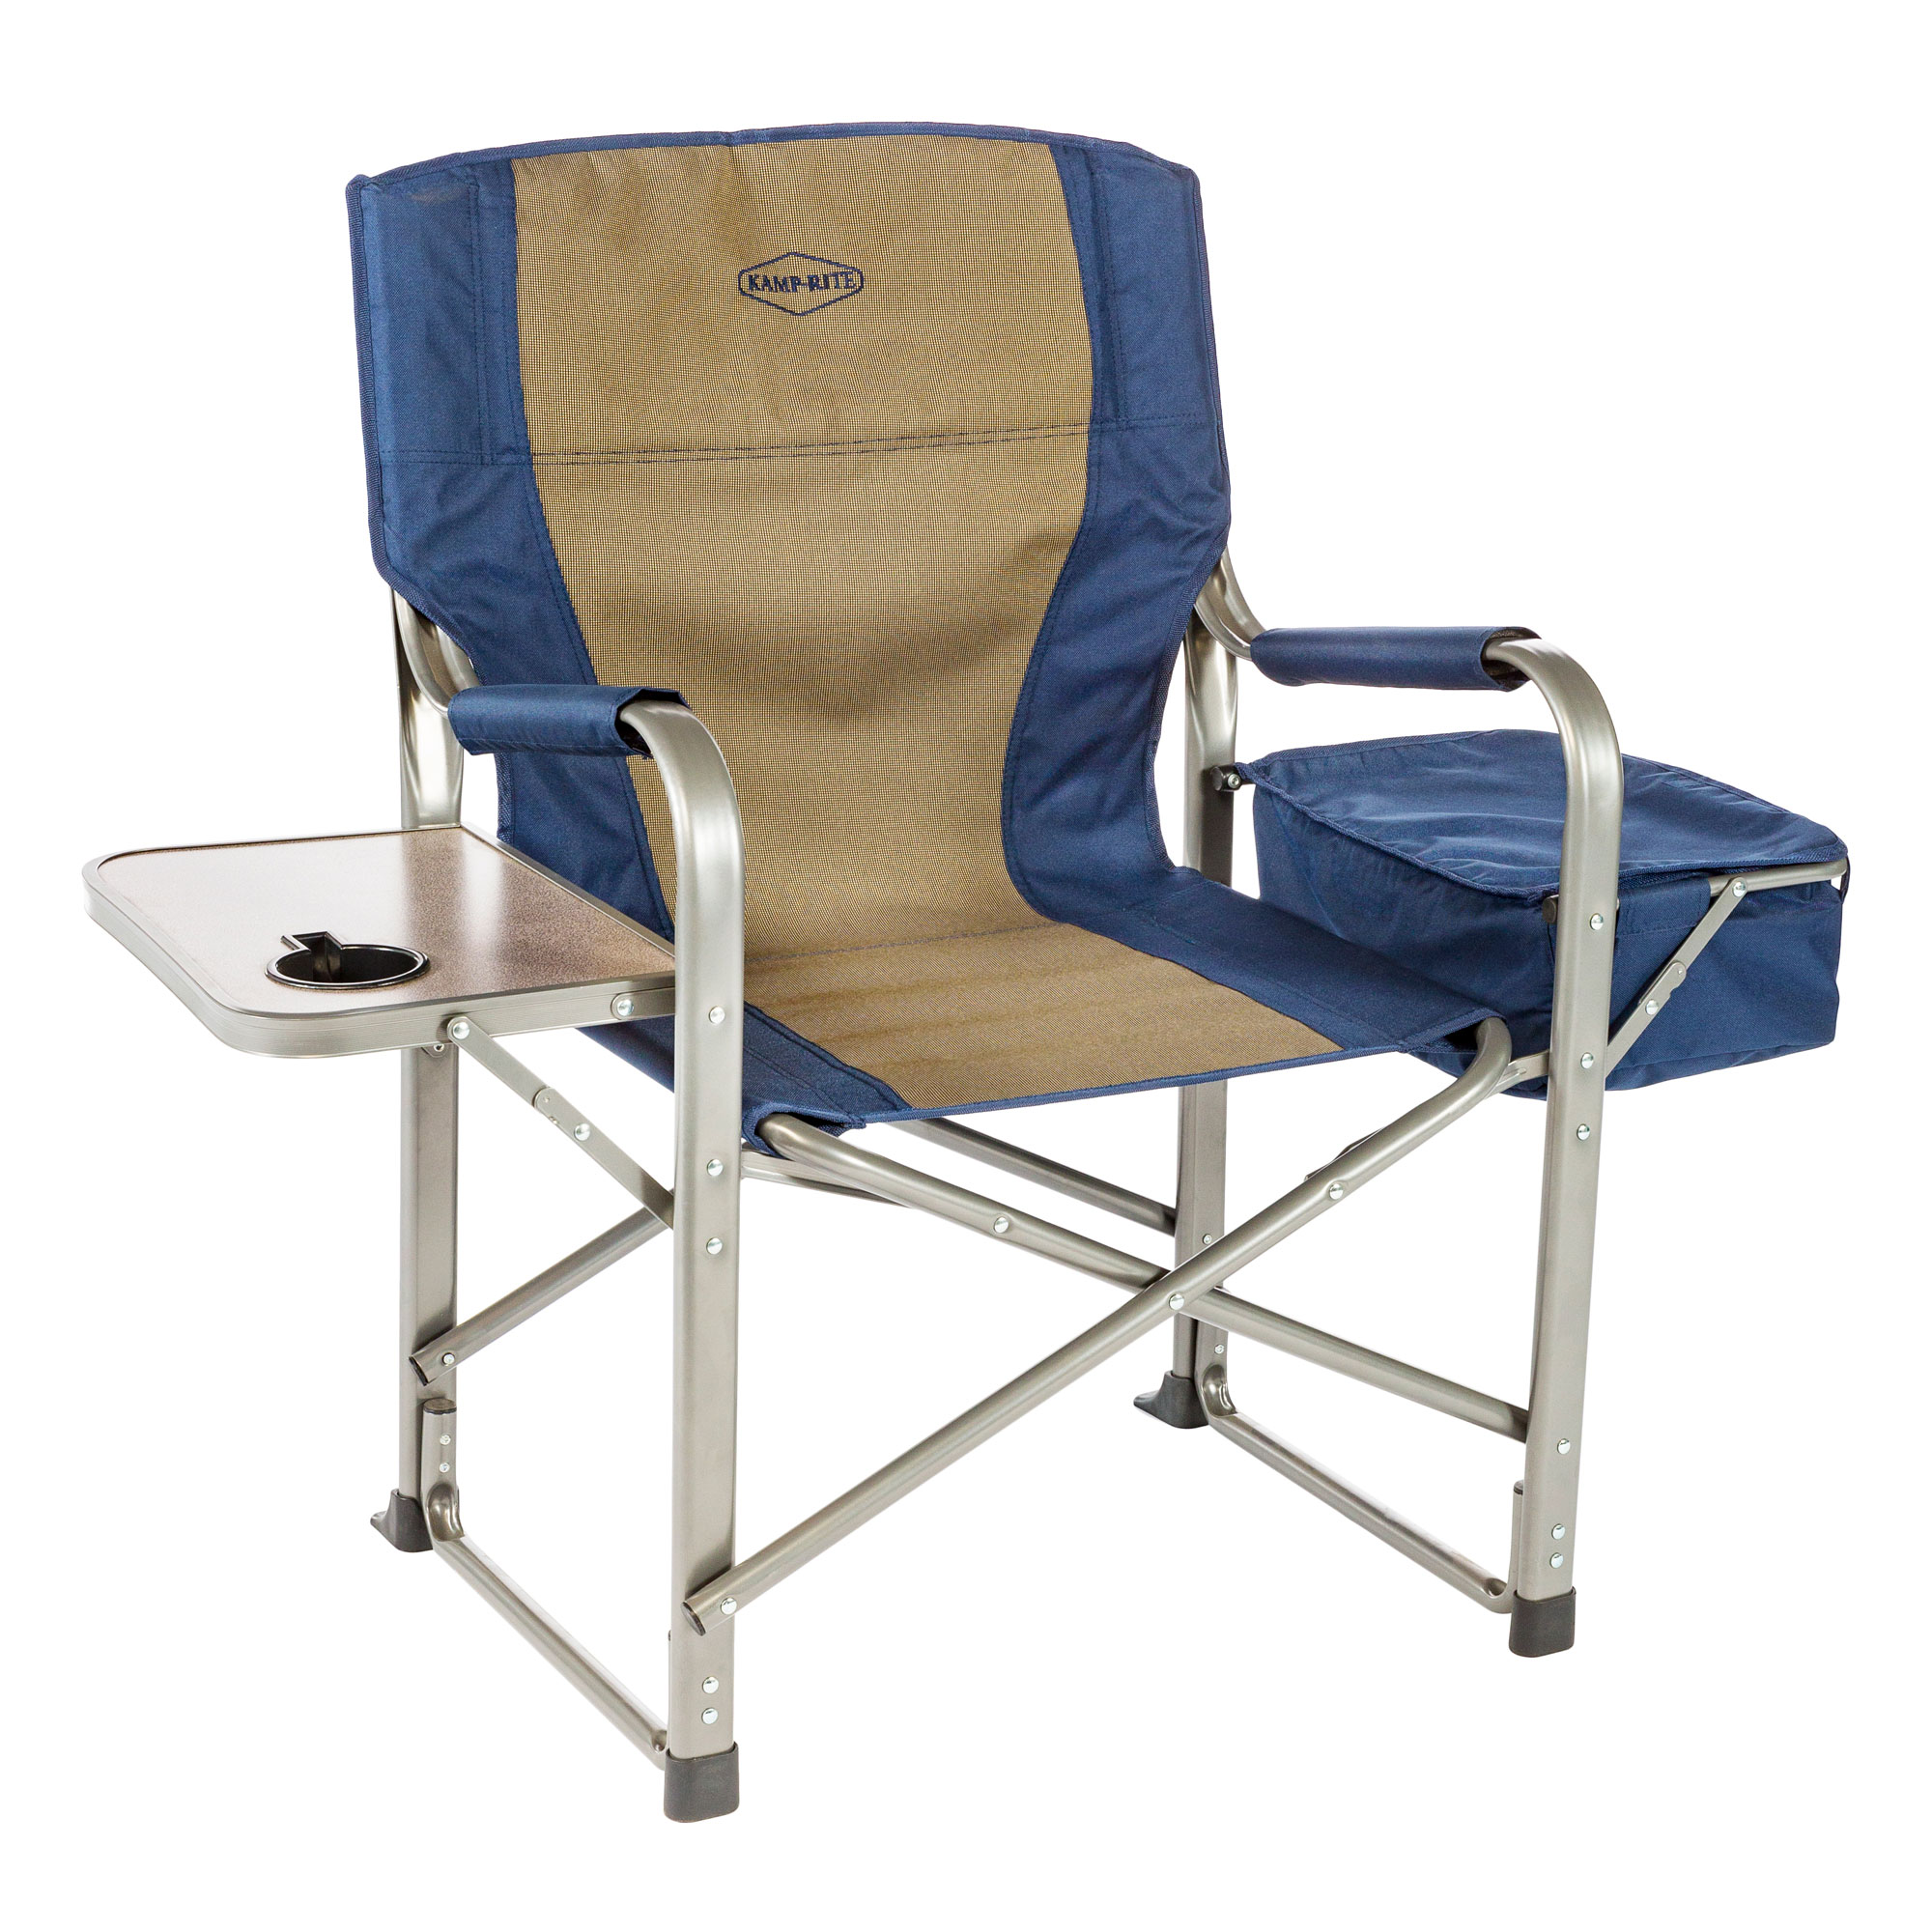 kamp rite outdoor camp folding director chair with side resource ashx table cooler kmart desk retro lounge furniture hampton bay pembrey lights brown end tables set round coffee